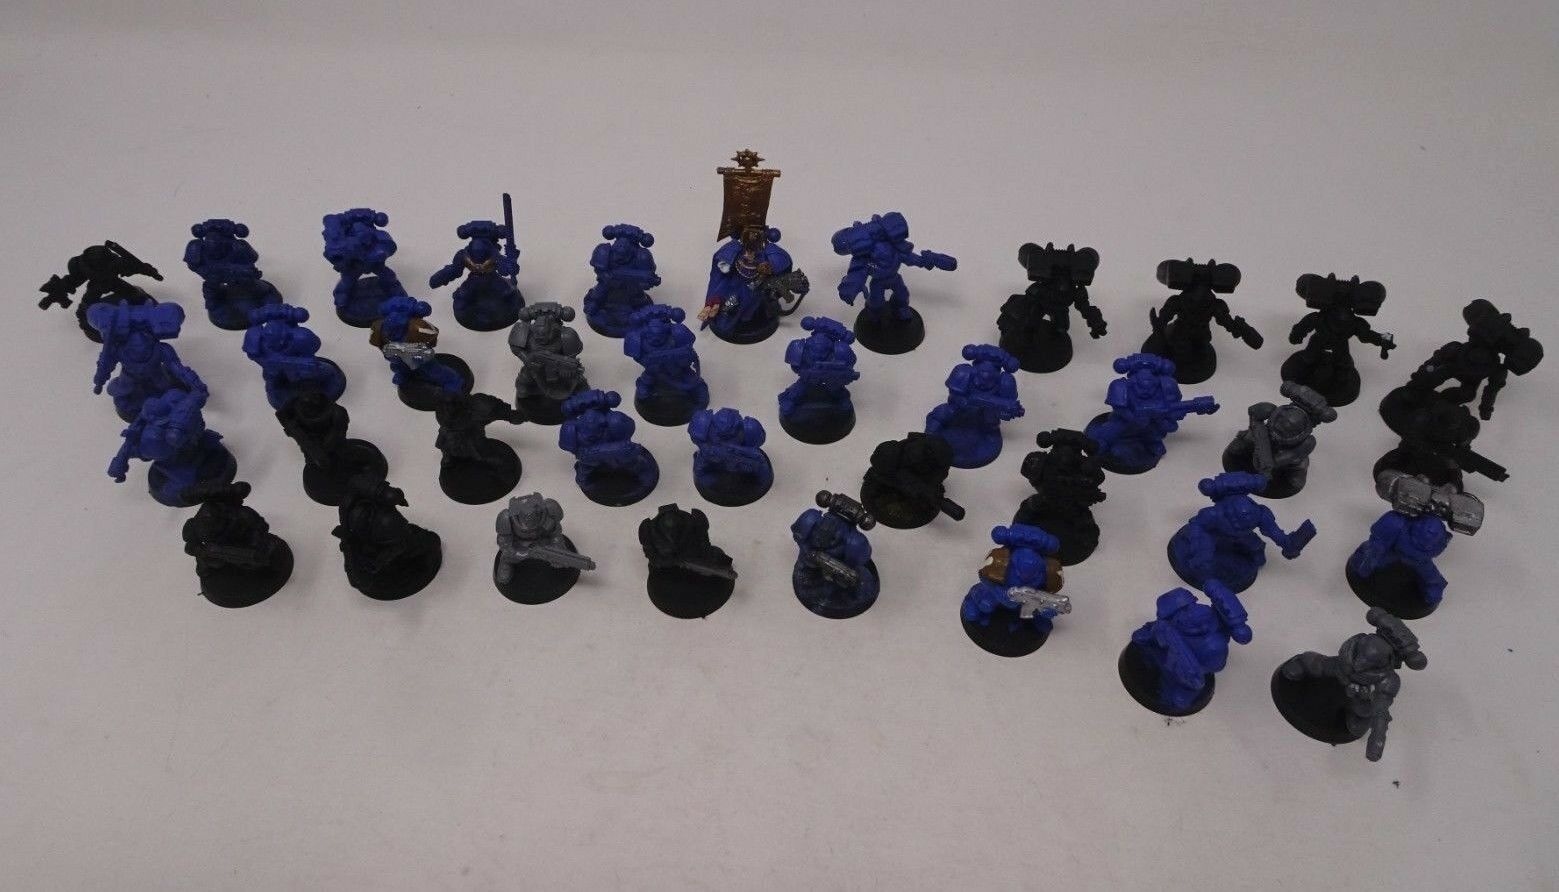 HUGE LOT of Warhammer 40K 40,000 Soldiers with Case - 40 Men + pieces